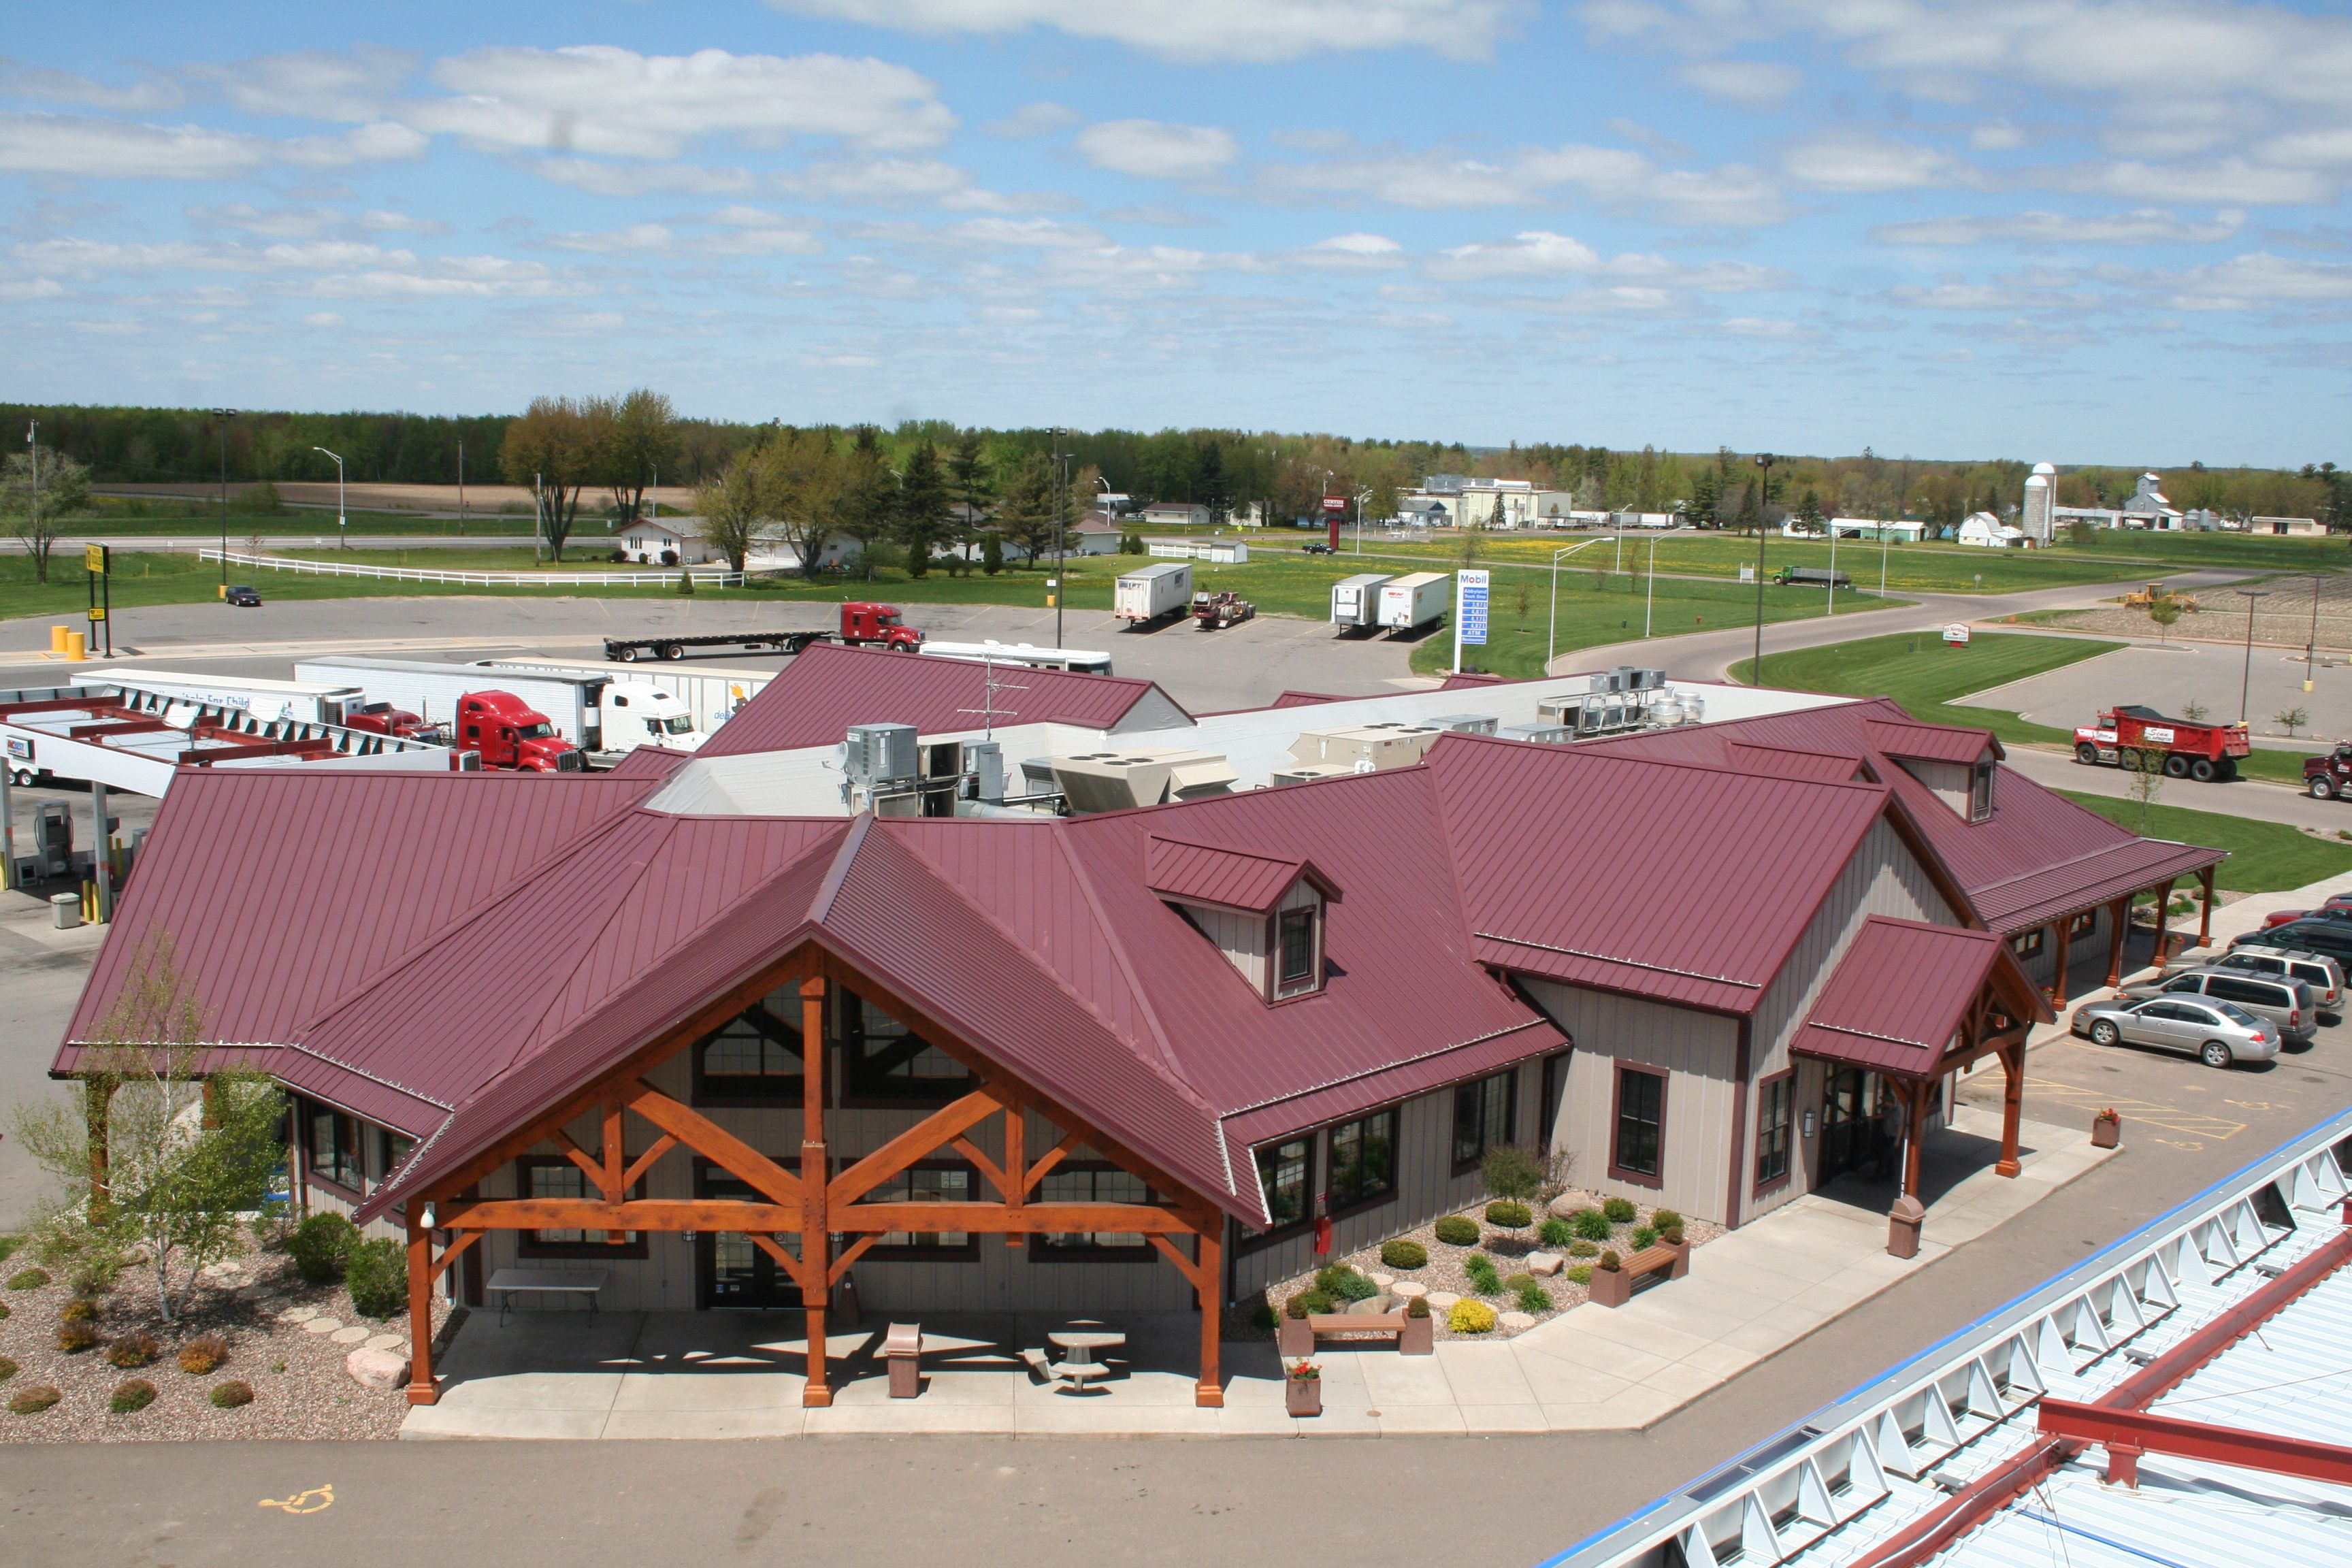 Standing Seam Metal Roof In Burgundy. Metal Provided By Coated Metals  Group. Www.